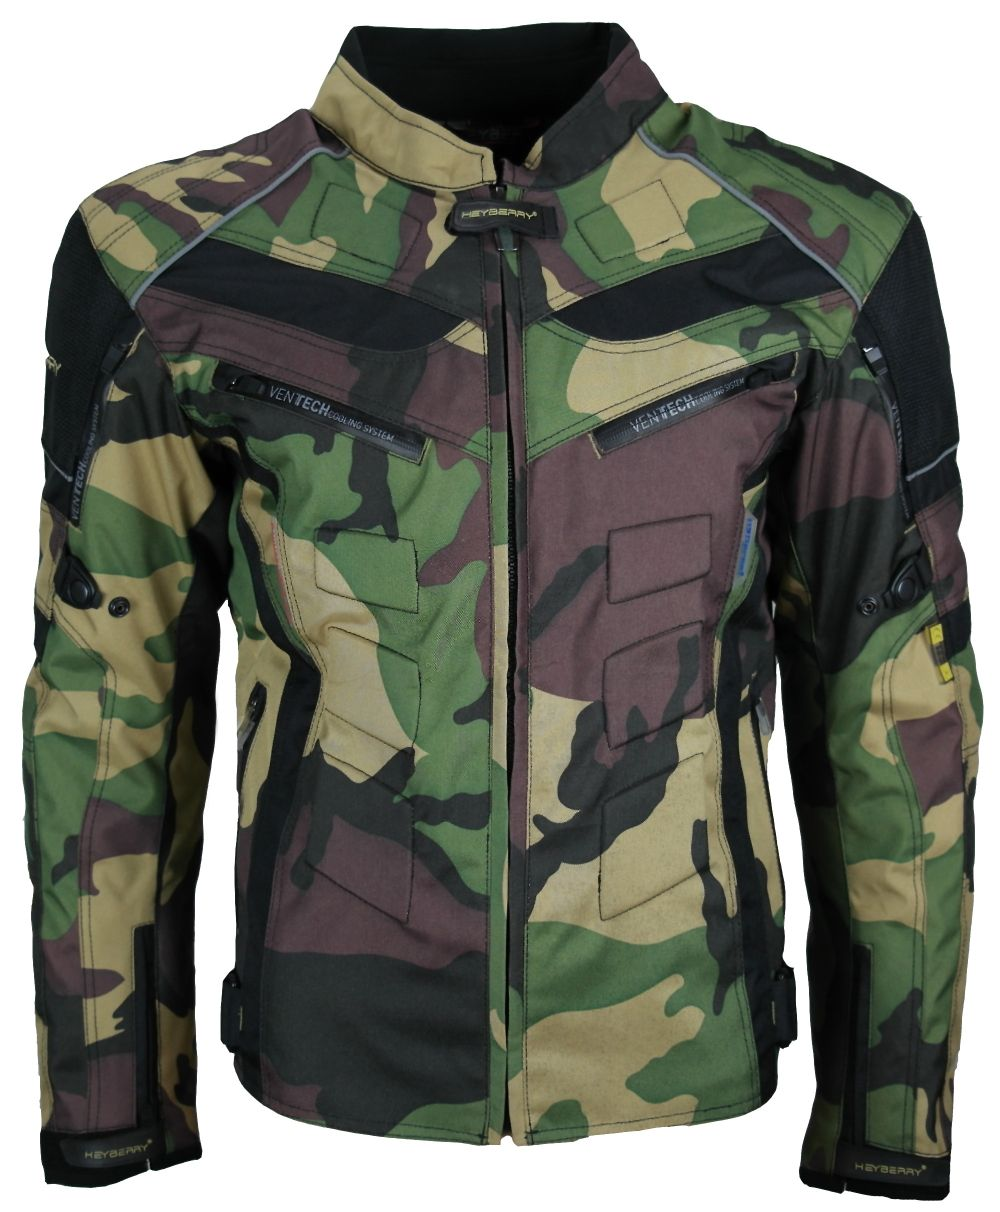 heyberry motorrad roller jacke motorradjacke camouflage. Black Bedroom Furniture Sets. Home Design Ideas